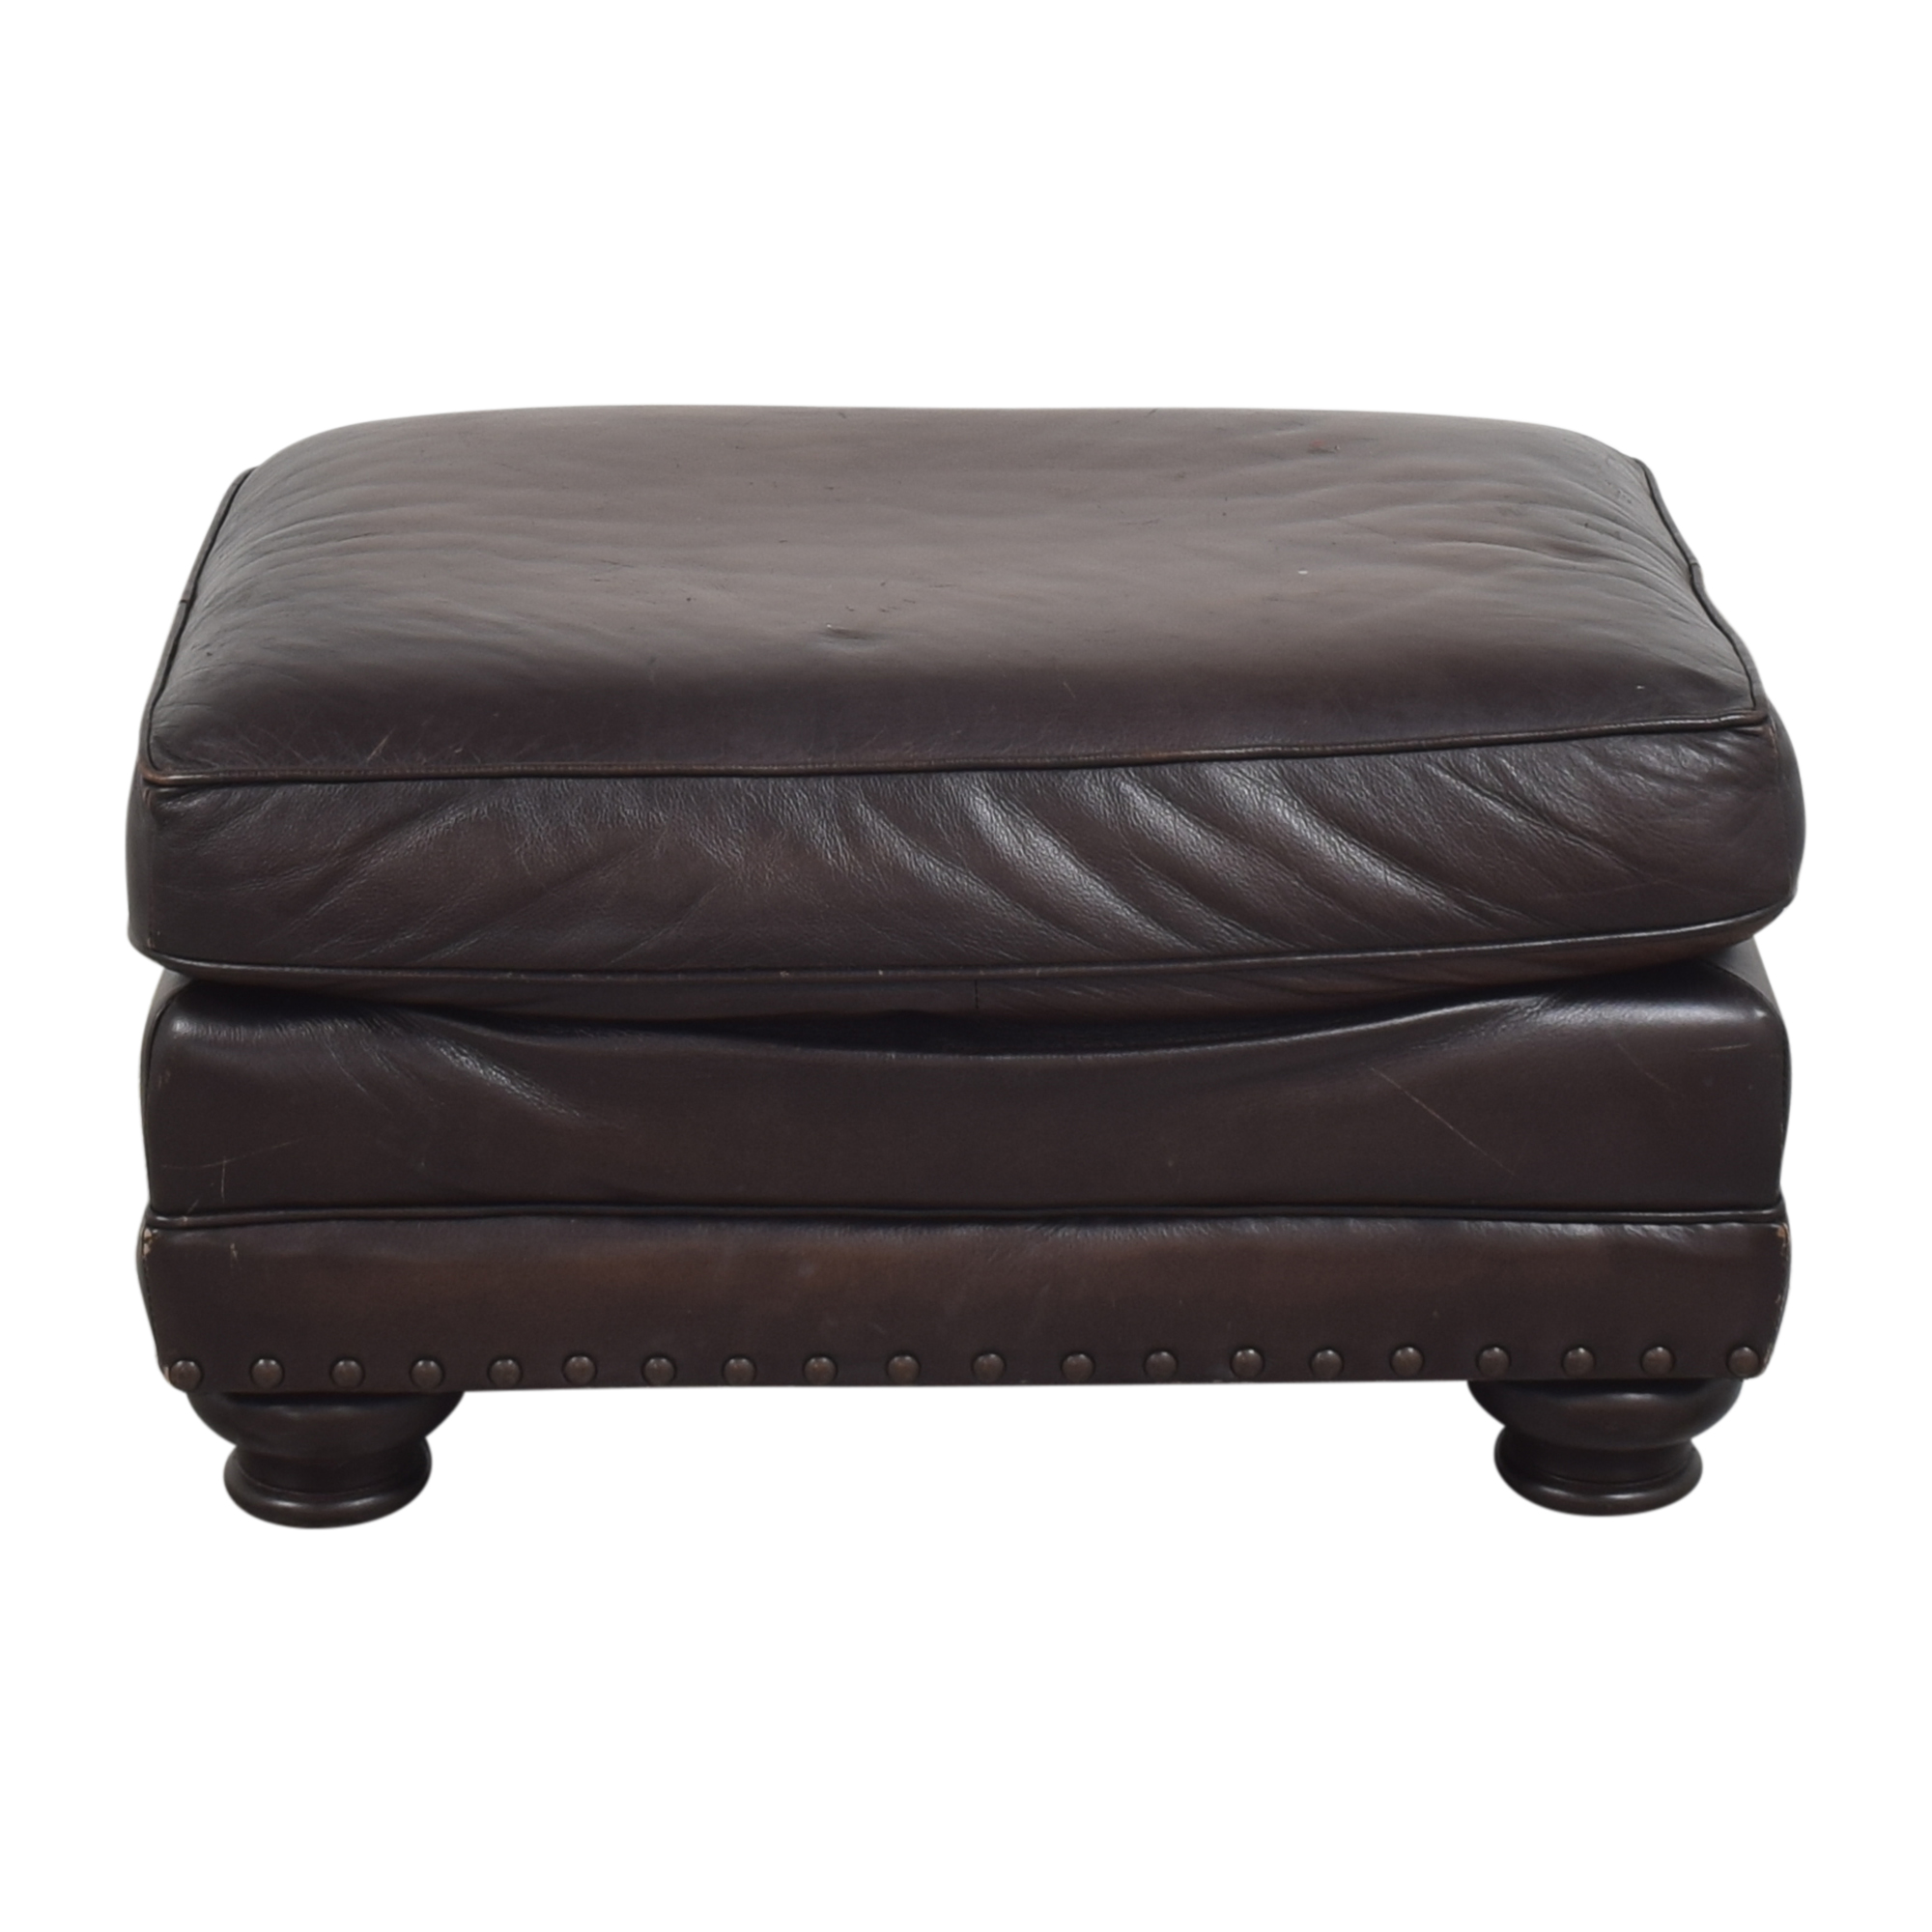 Raymour & Flanigan Raymour & Flanigan Rectangular Ottoman on sale